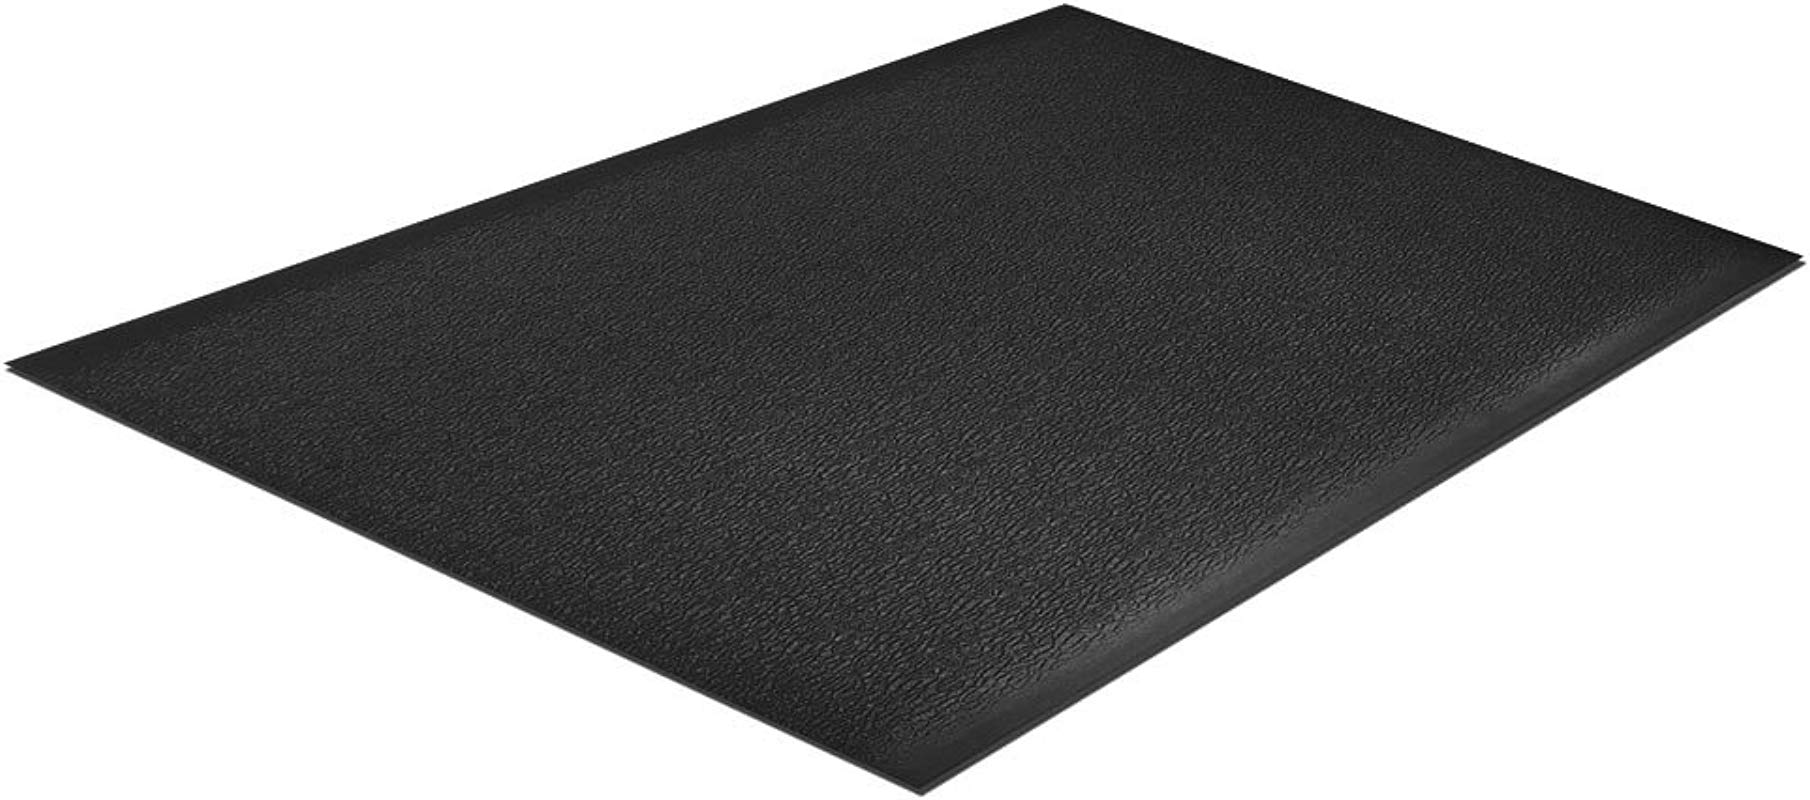 Comfort Step 3 8 Anti Fatigue Mat With Pebble Emboss Solid Black 3 X 5